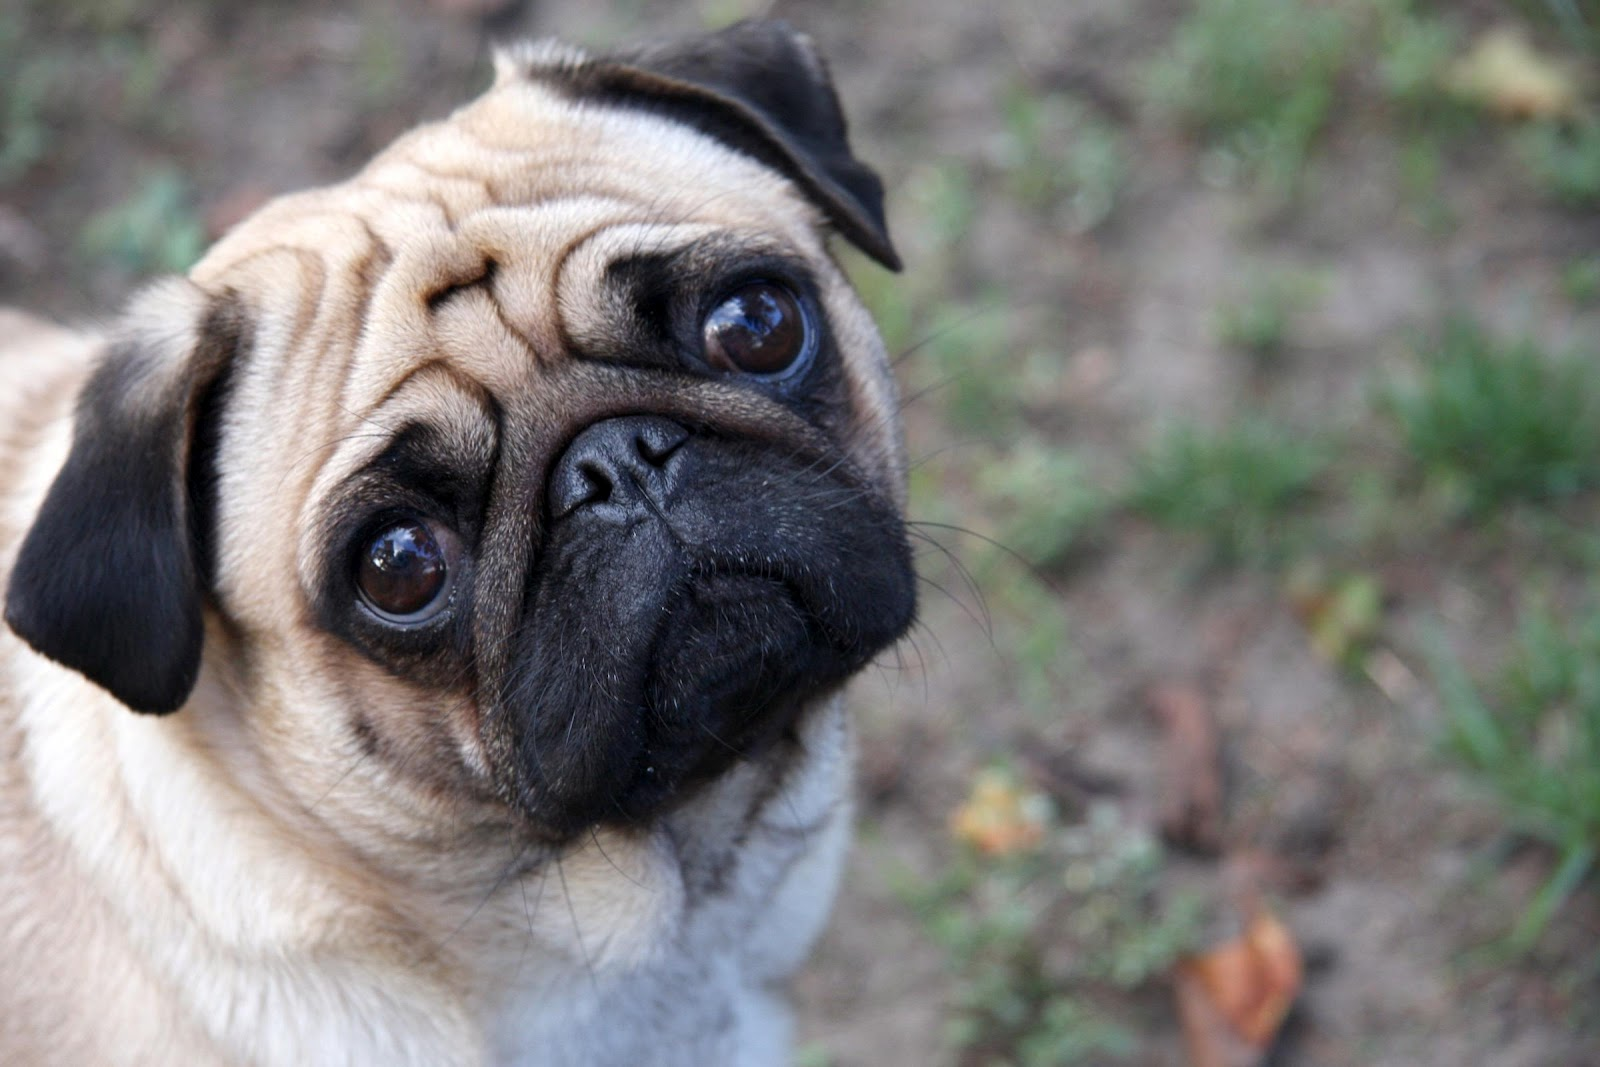 All Wallpapers Pug Dog Hd Wallpapers 1600x1067